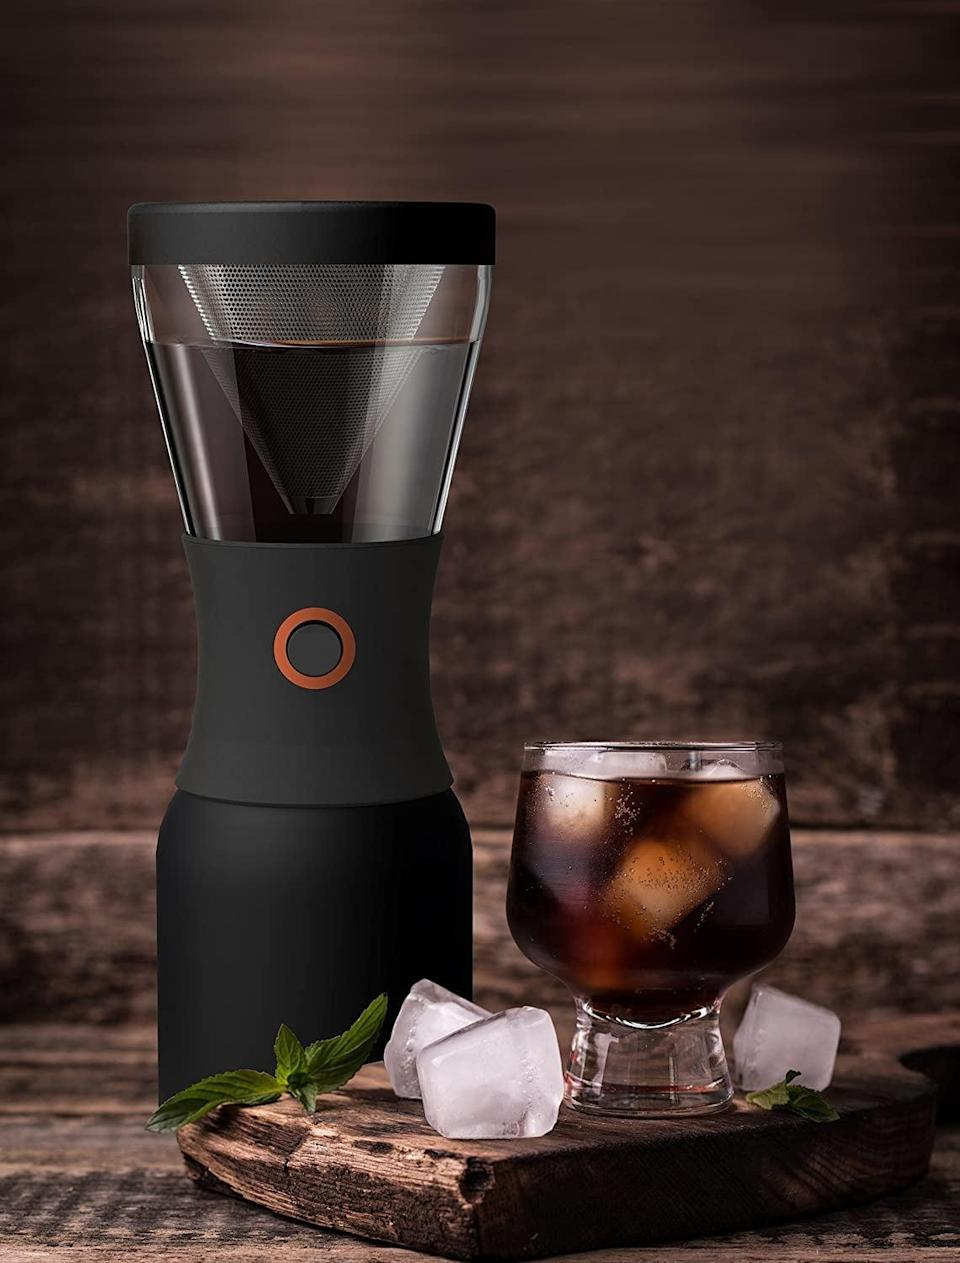 <p>The <span>Asobu Coldbrew Portable Cold Brew Coffee Maker</span> ($42) is a vacuum insulated, hassle-free, cold brew coffee maker that she can take on-the-go.</p>